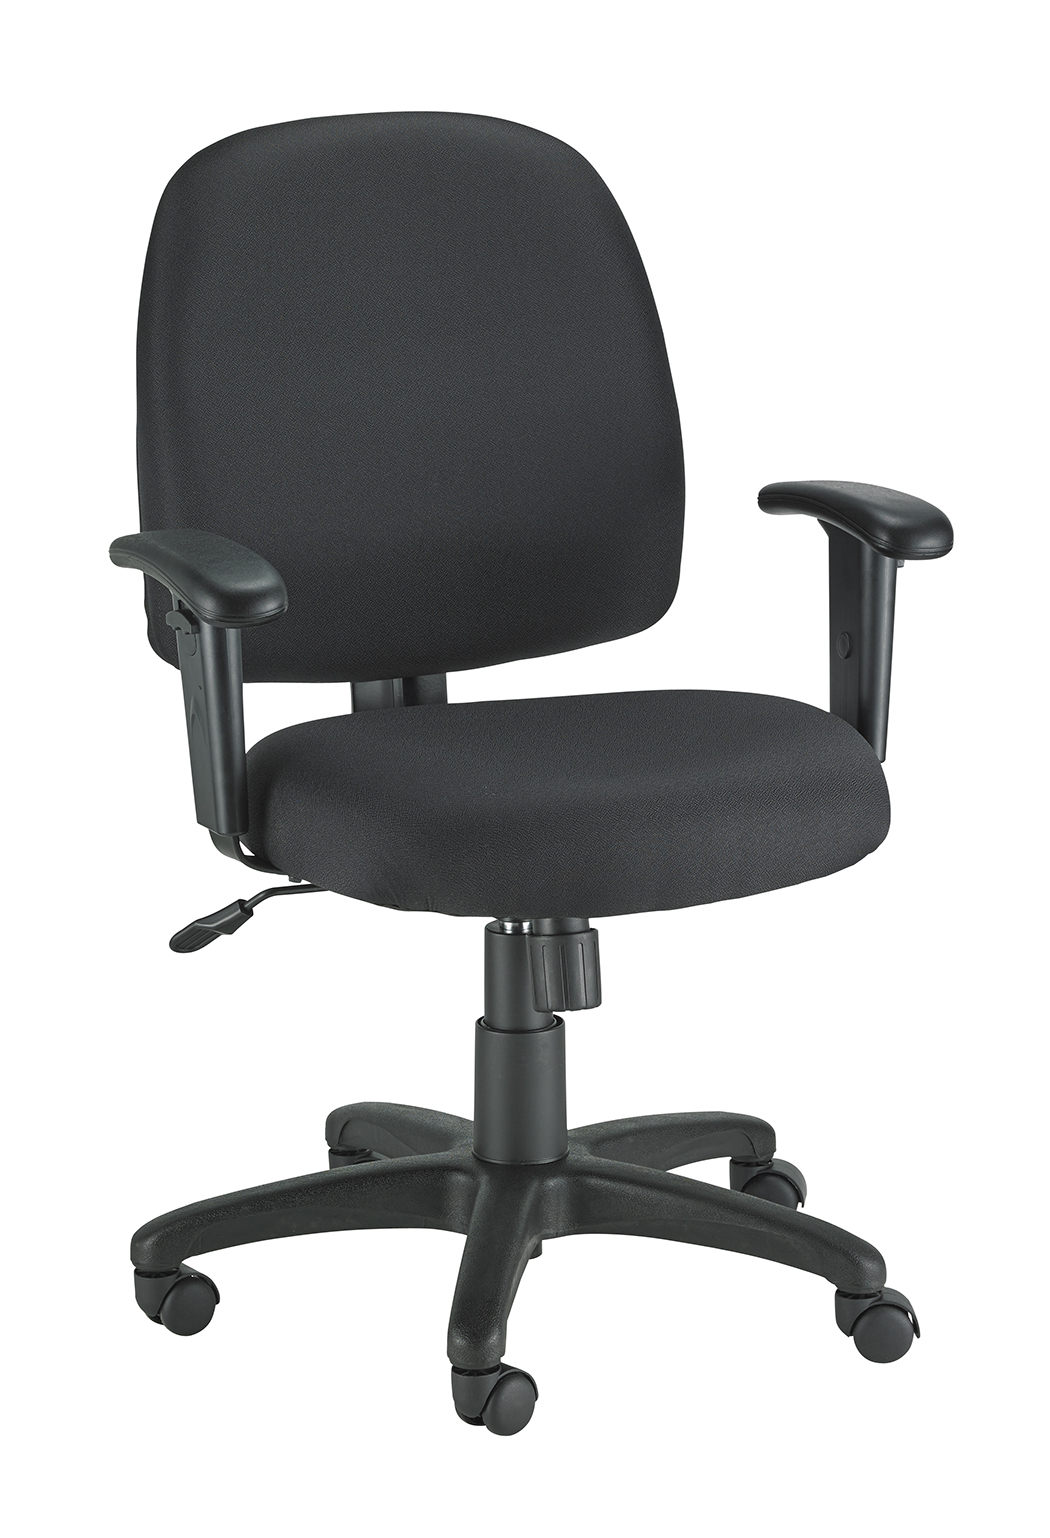 Eurotech Newport Fabric Task Chair - black